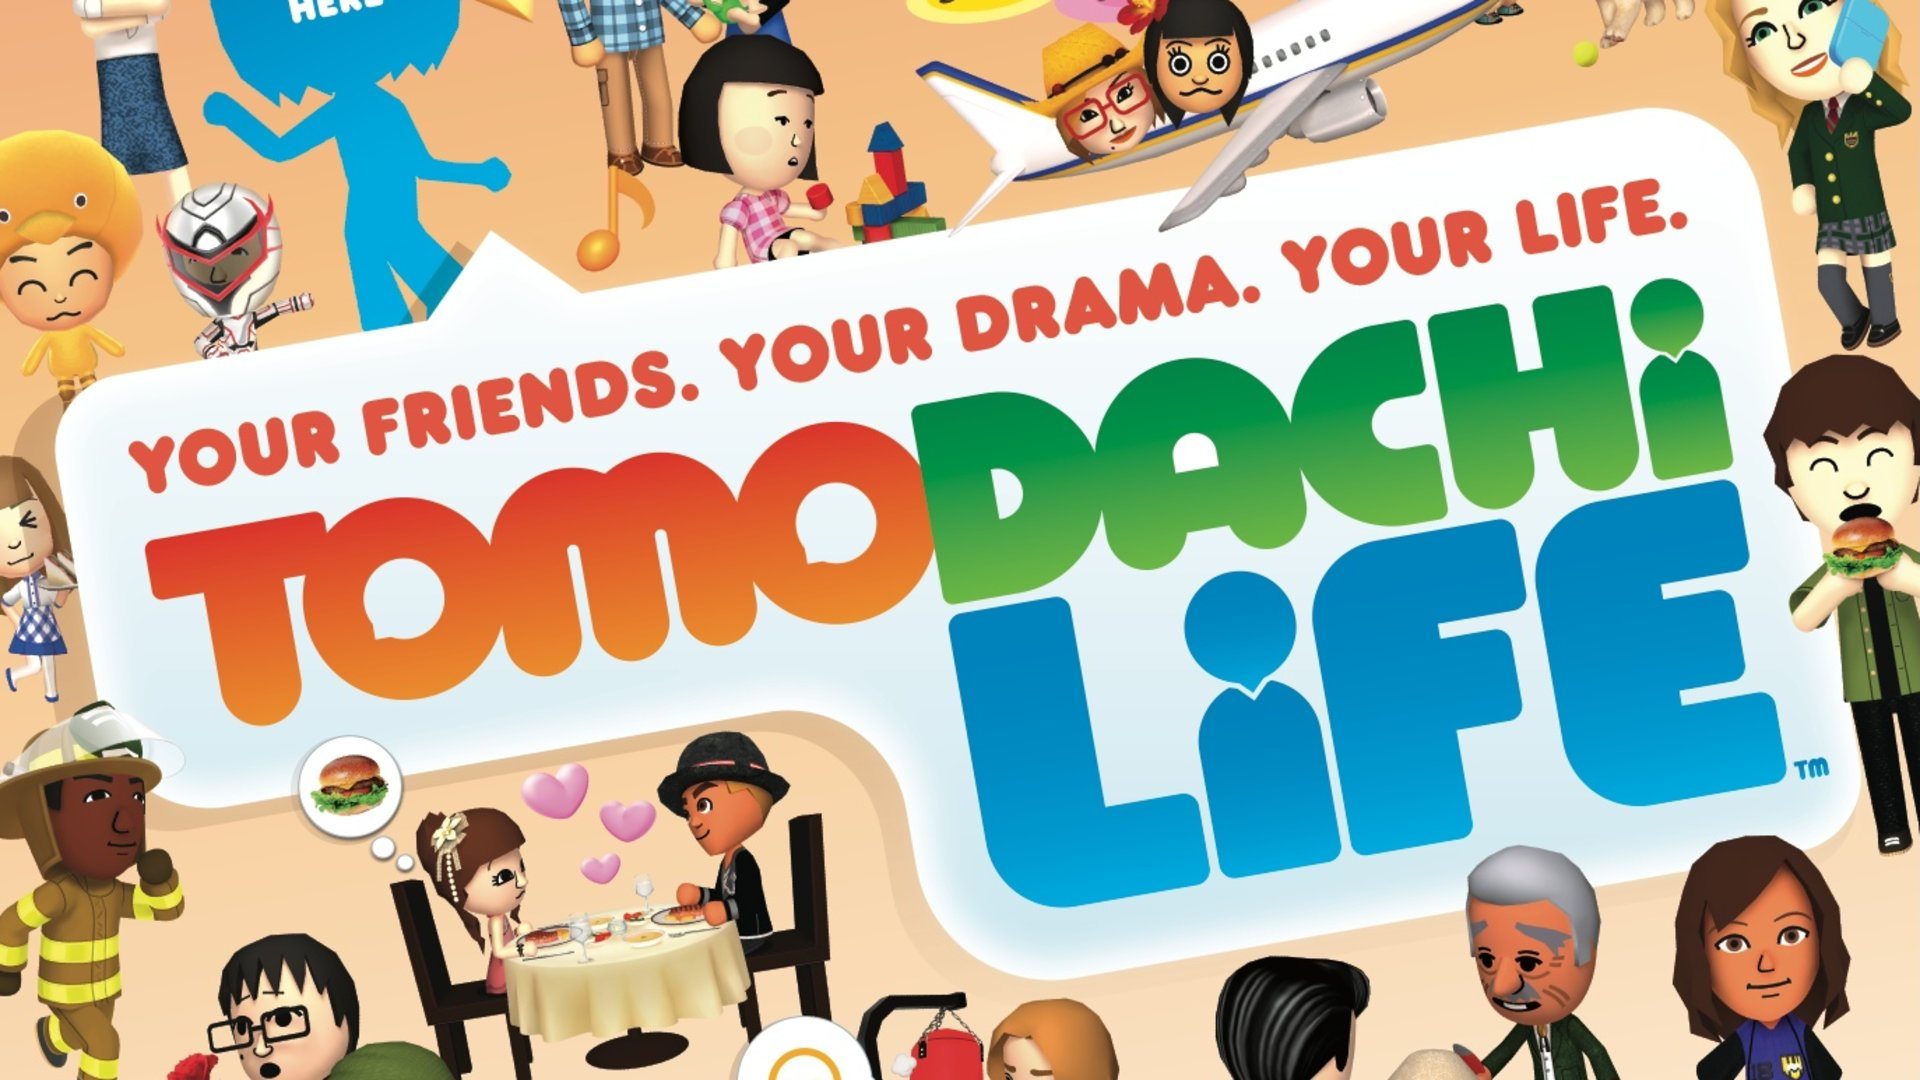 3ds_tomodachilife_front_pkg02.0_cinema_1920.0